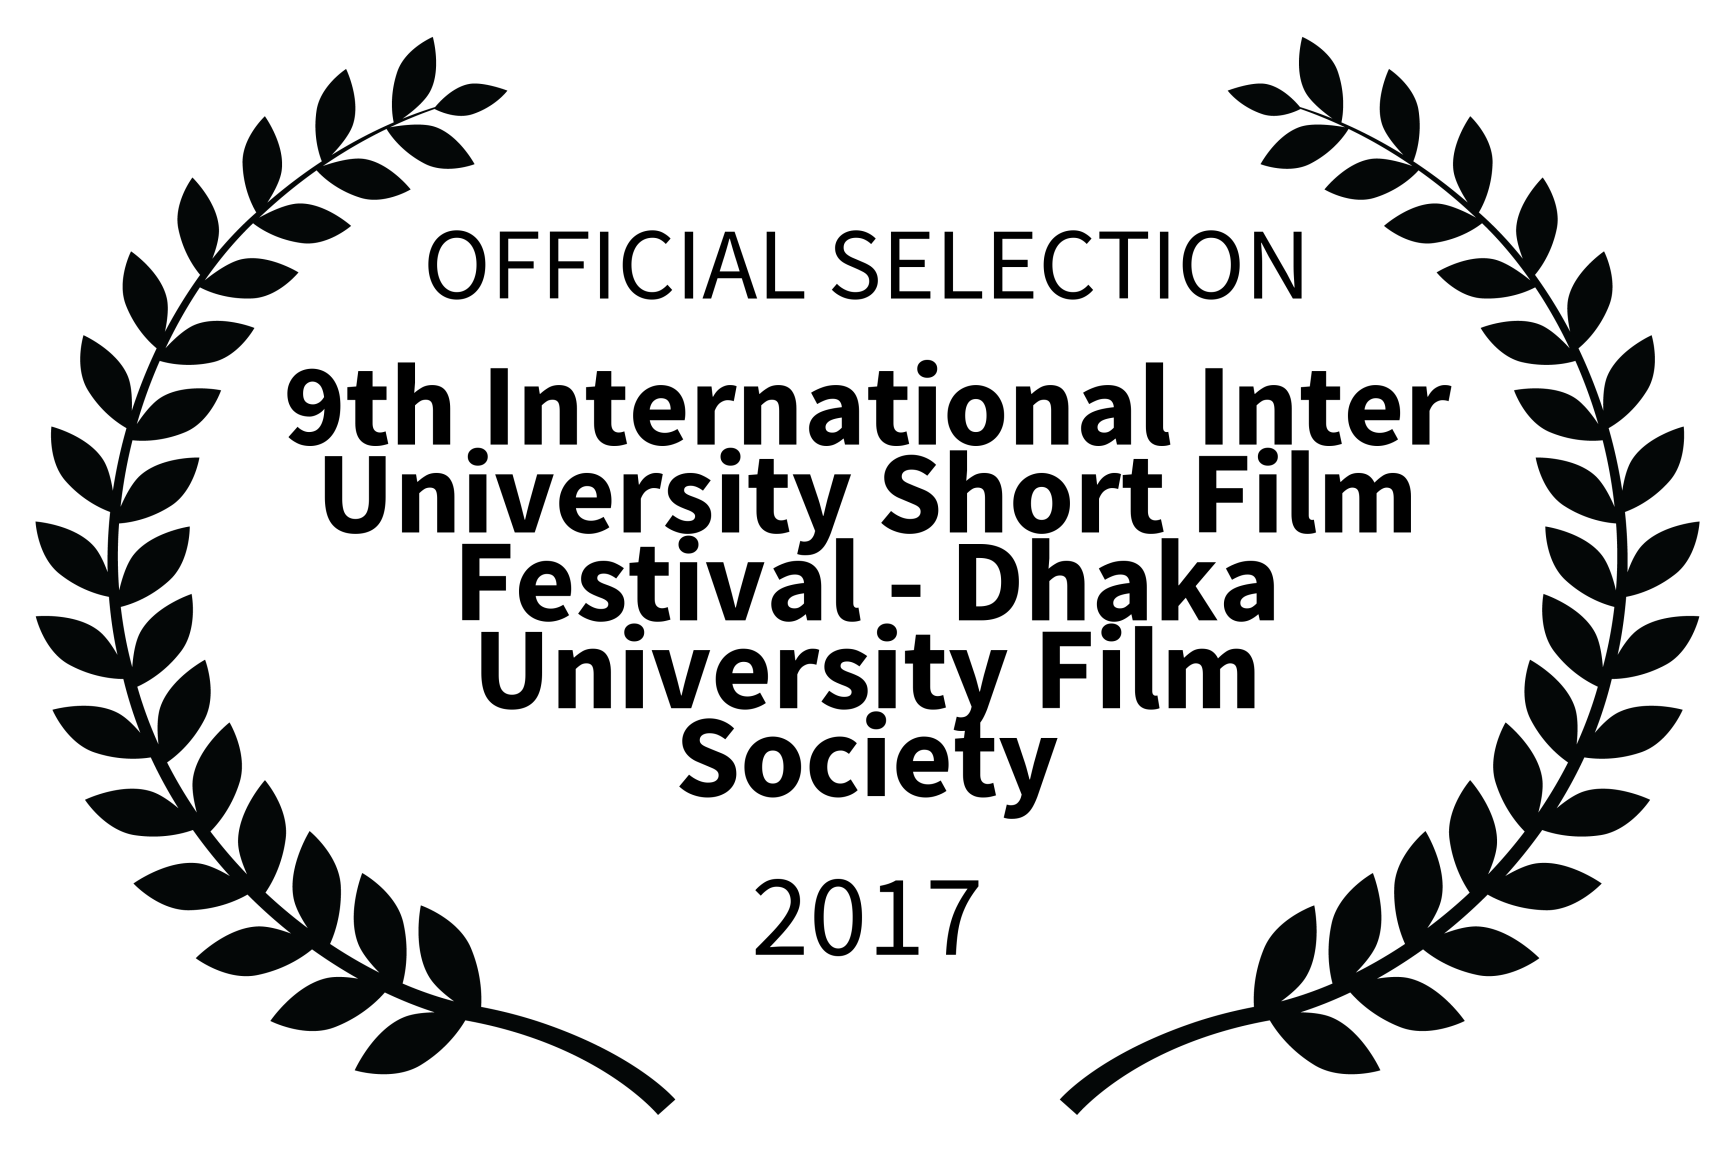 OFFICIAL SELECTION - 9th International I